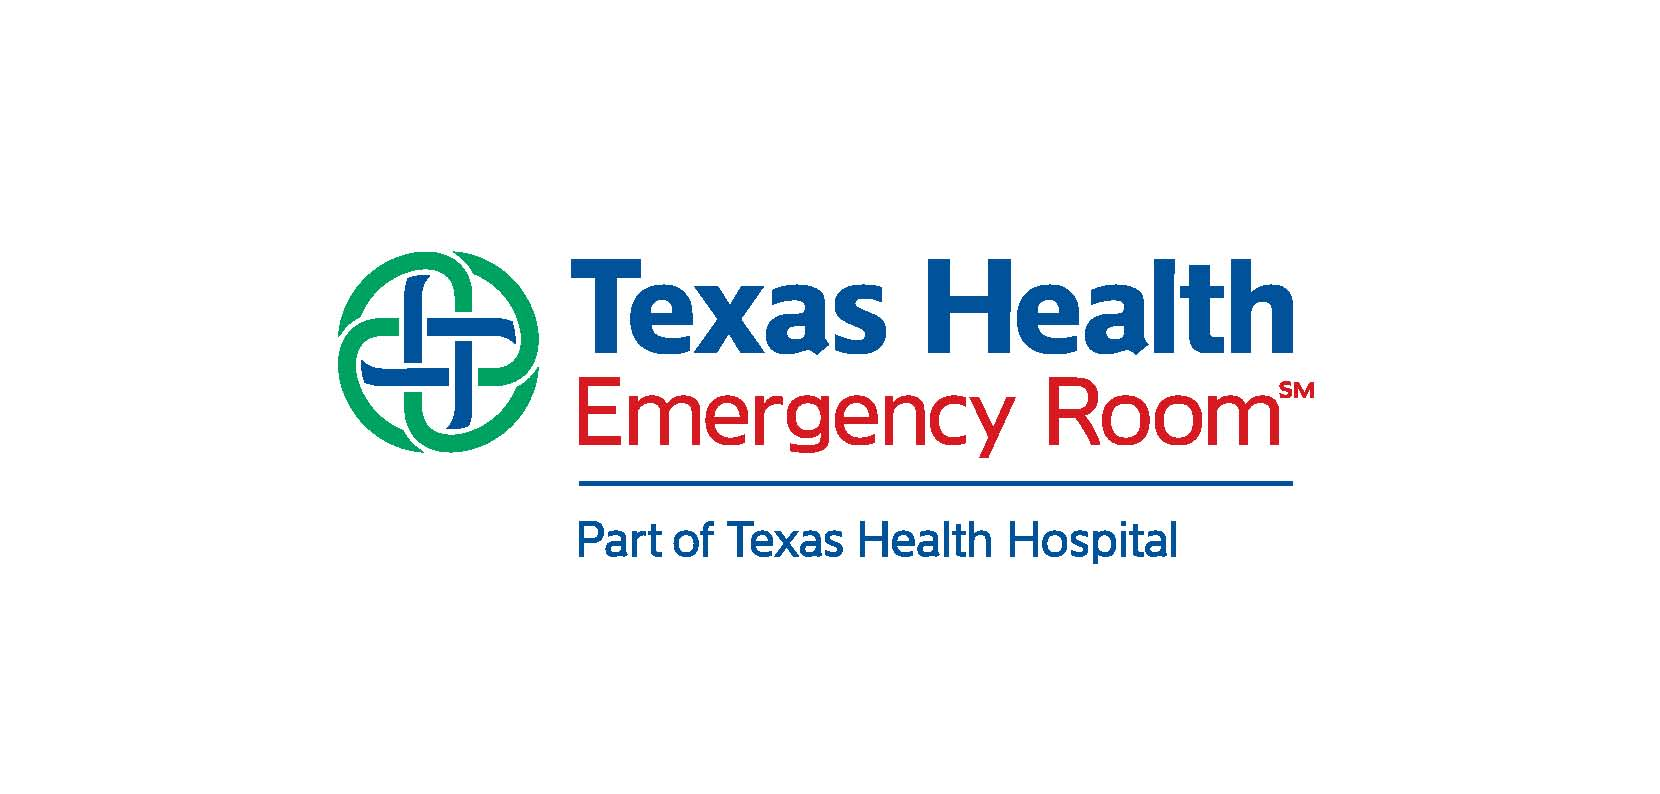 Texas Health Resources To Open First Freestanding. New York Criminal Justice Colleges. Overseas Summer Programs Best Fashion Schools. American Express Symbol Carbon Dioxide Offset. Garage Door Opener Maintenance Lubrication. Should I Buy Apple Stock Drain Service Queens. Pacific Life Annuity Rates Phschool Lab Bench. Breakfast Ideas No Eggs Web Page In Photoshop. Personal Consolidation Loans For Credit Cards